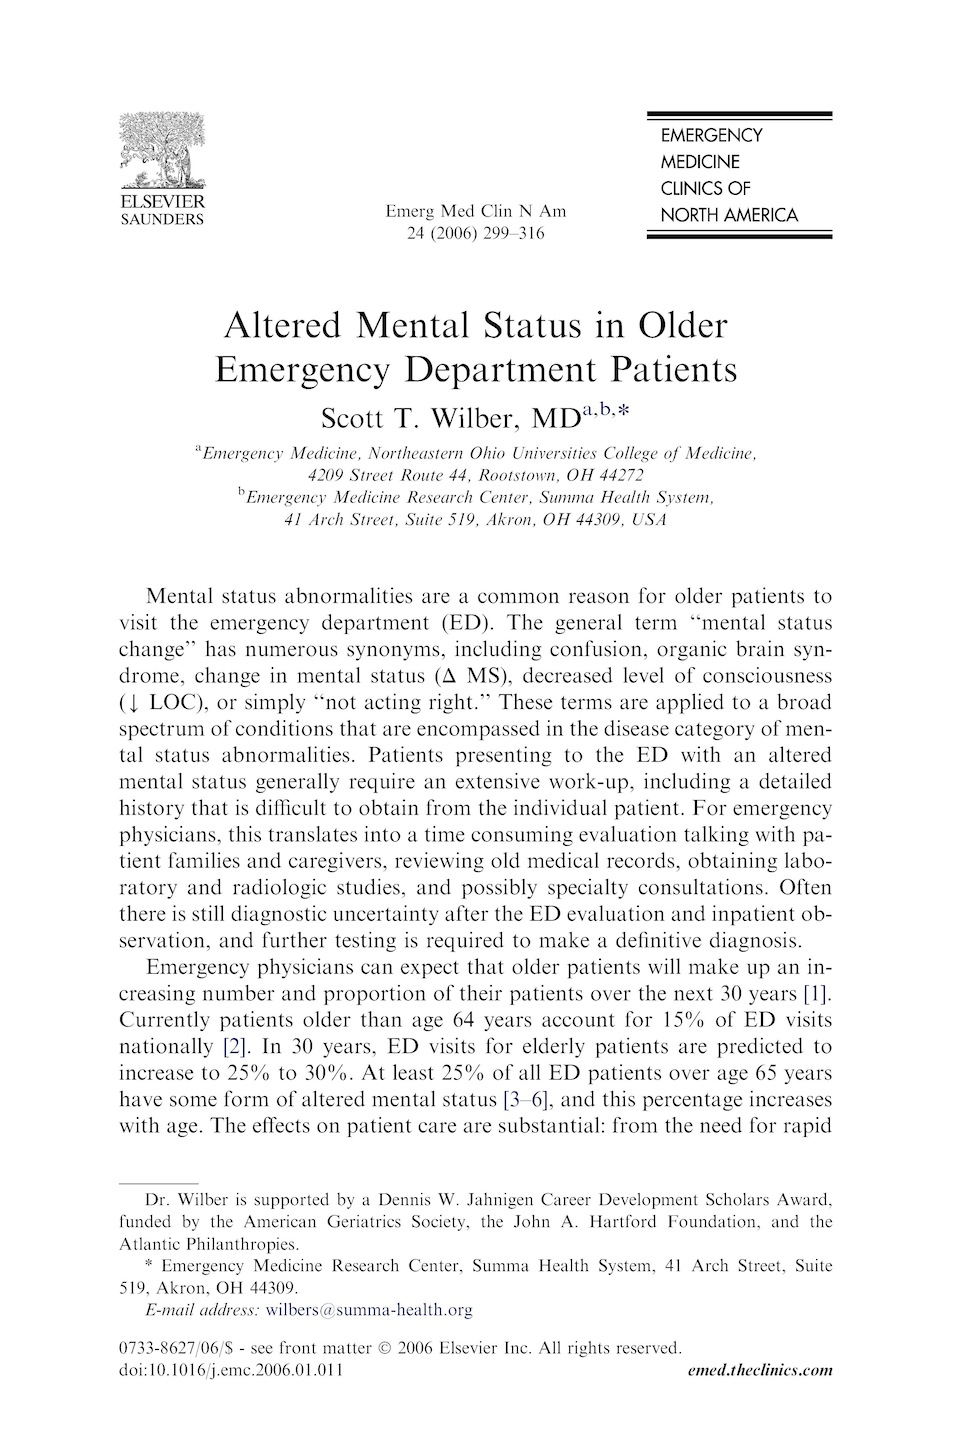 Altered Mental Status in EmerMedClinNA 2006_Page_01